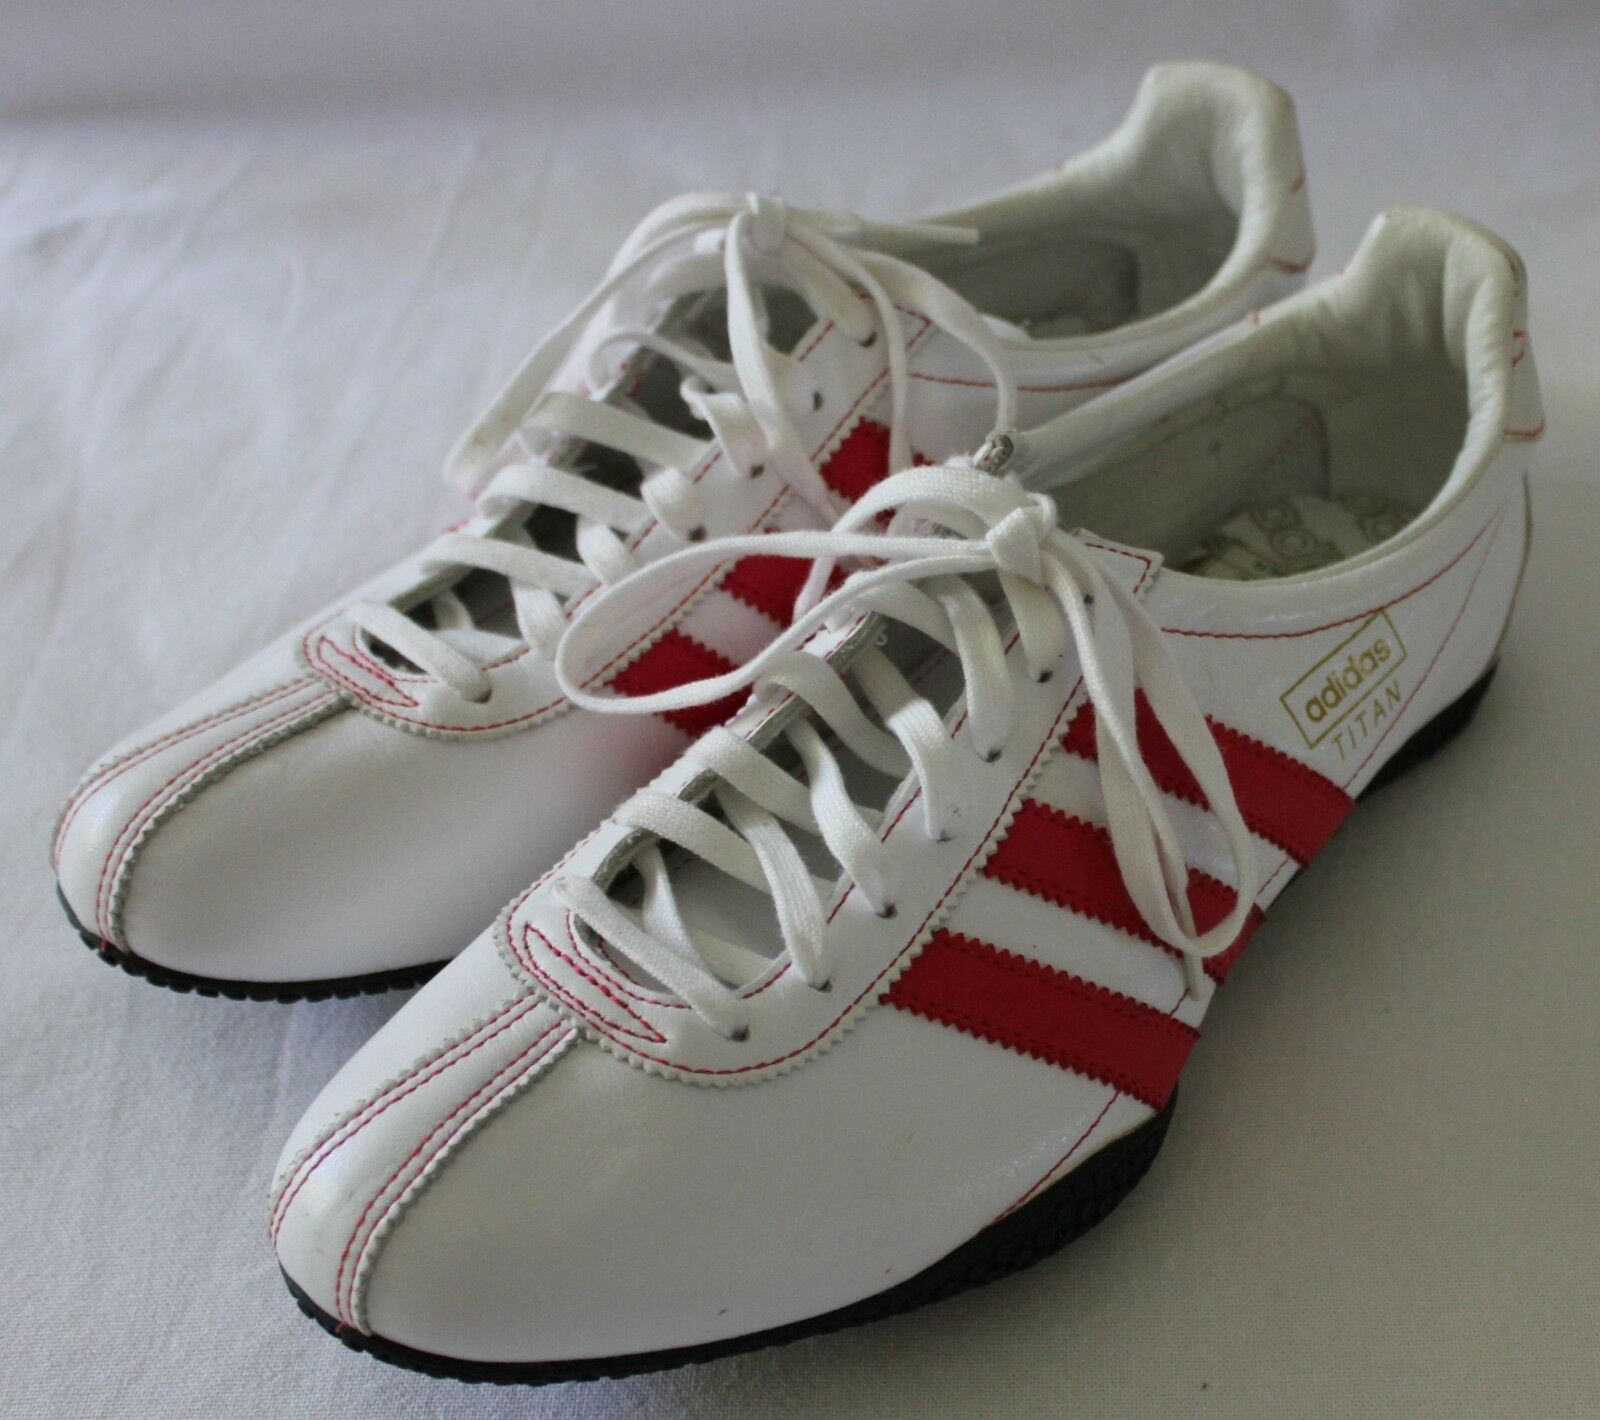 ADIDAS ~ Titan White Leather Sneakers Trainers w Red Three Stripes 8 40 NWOT New shoes for men and women, limited time discount